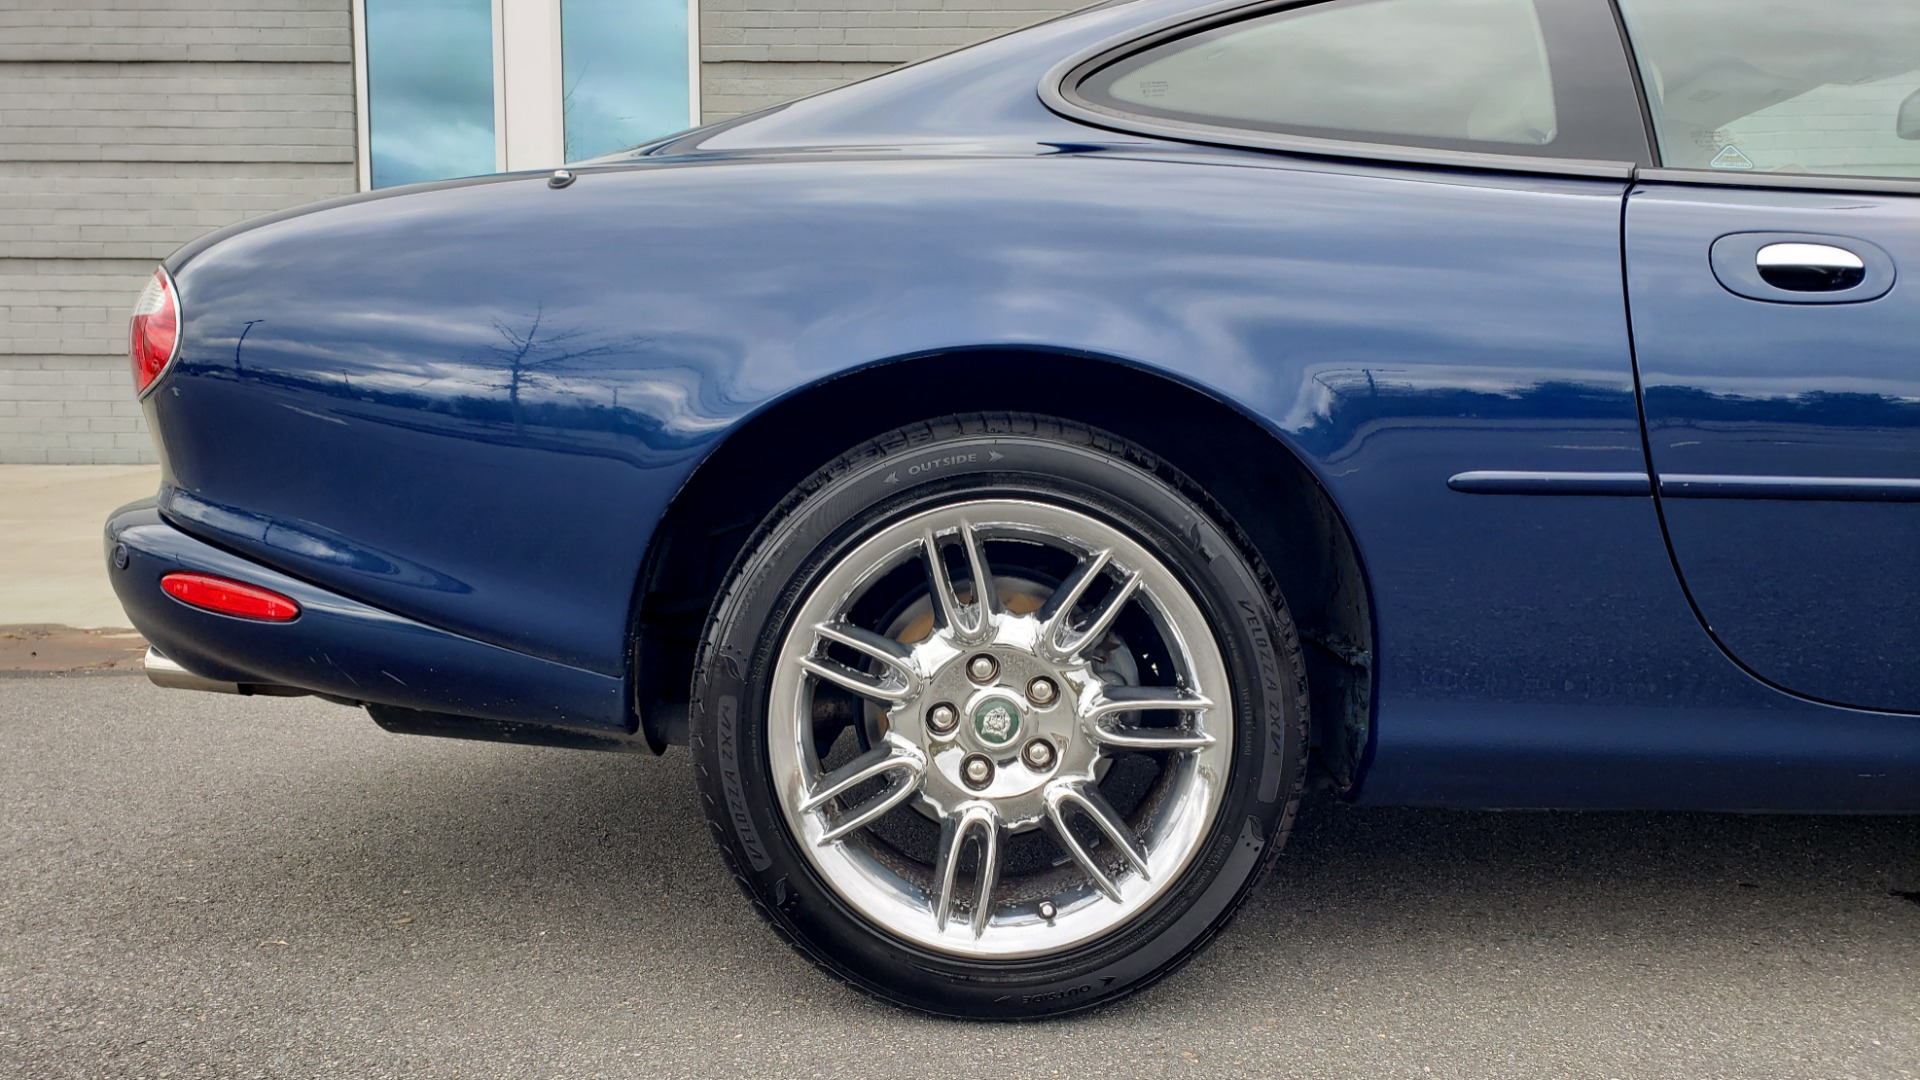 Used 2002 Jaguar XK8 COUPE / 4.0L V8 / 5-SPD AUTO / ALPINE SOUND / 18IN CHROME WHEELS for sale $16,450 at Formula Imports in Charlotte NC 28227 74